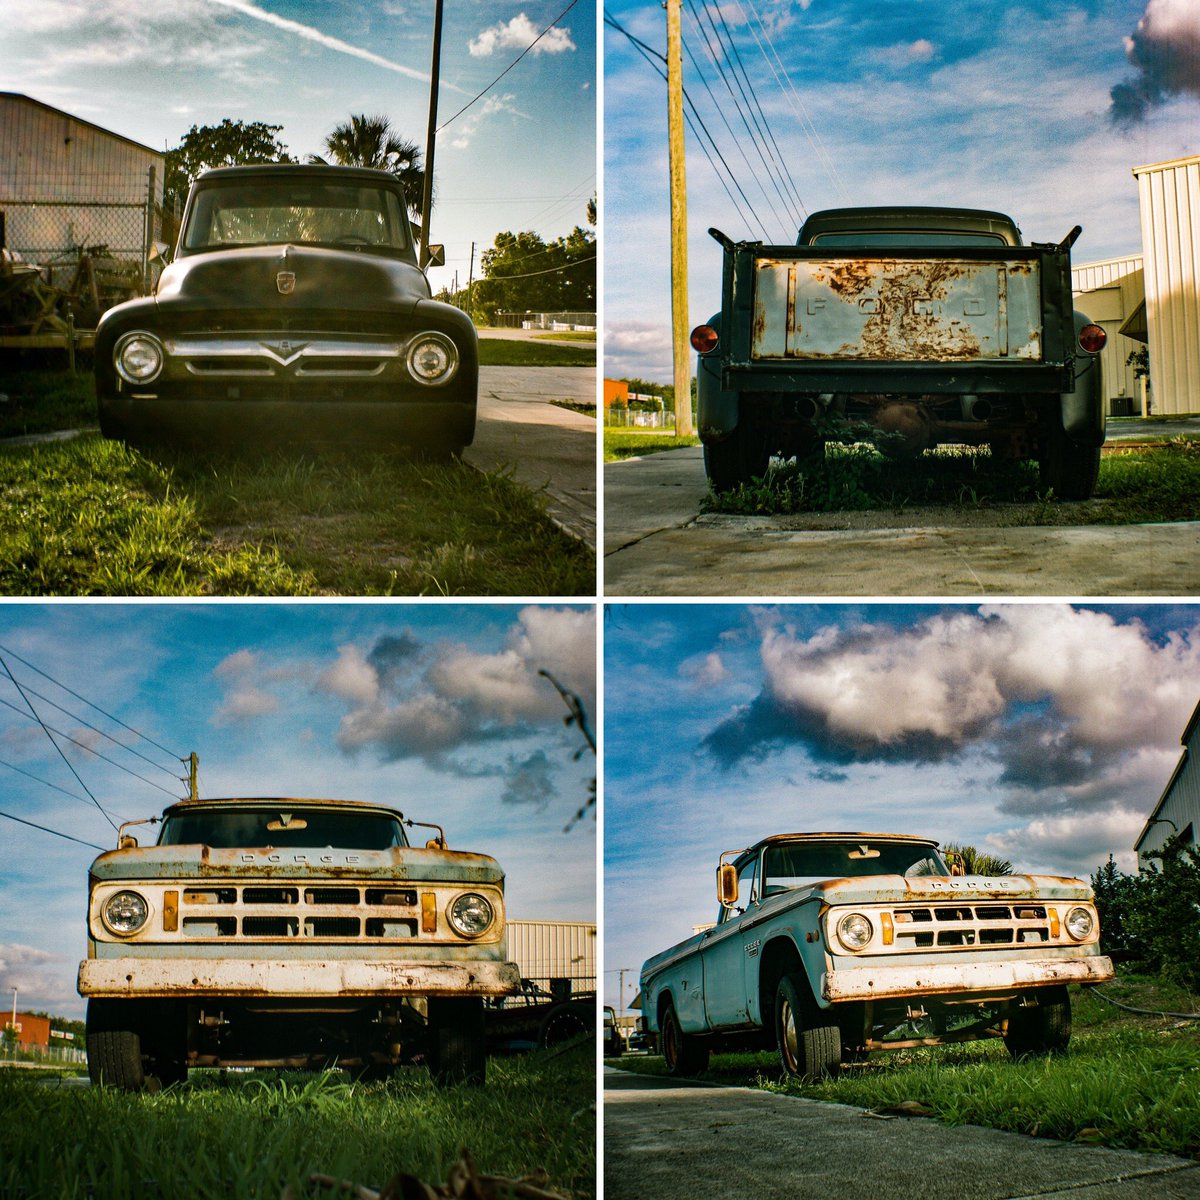 Here's some Results with the old 1953 Kodak Brownie Hawkeye camera I used for the first time. Portra 400. #oldtrucks #oldcamera #film #filmcamera #portra400 #justgoshoot pic.twitter.com/ZCyd0rY9dV